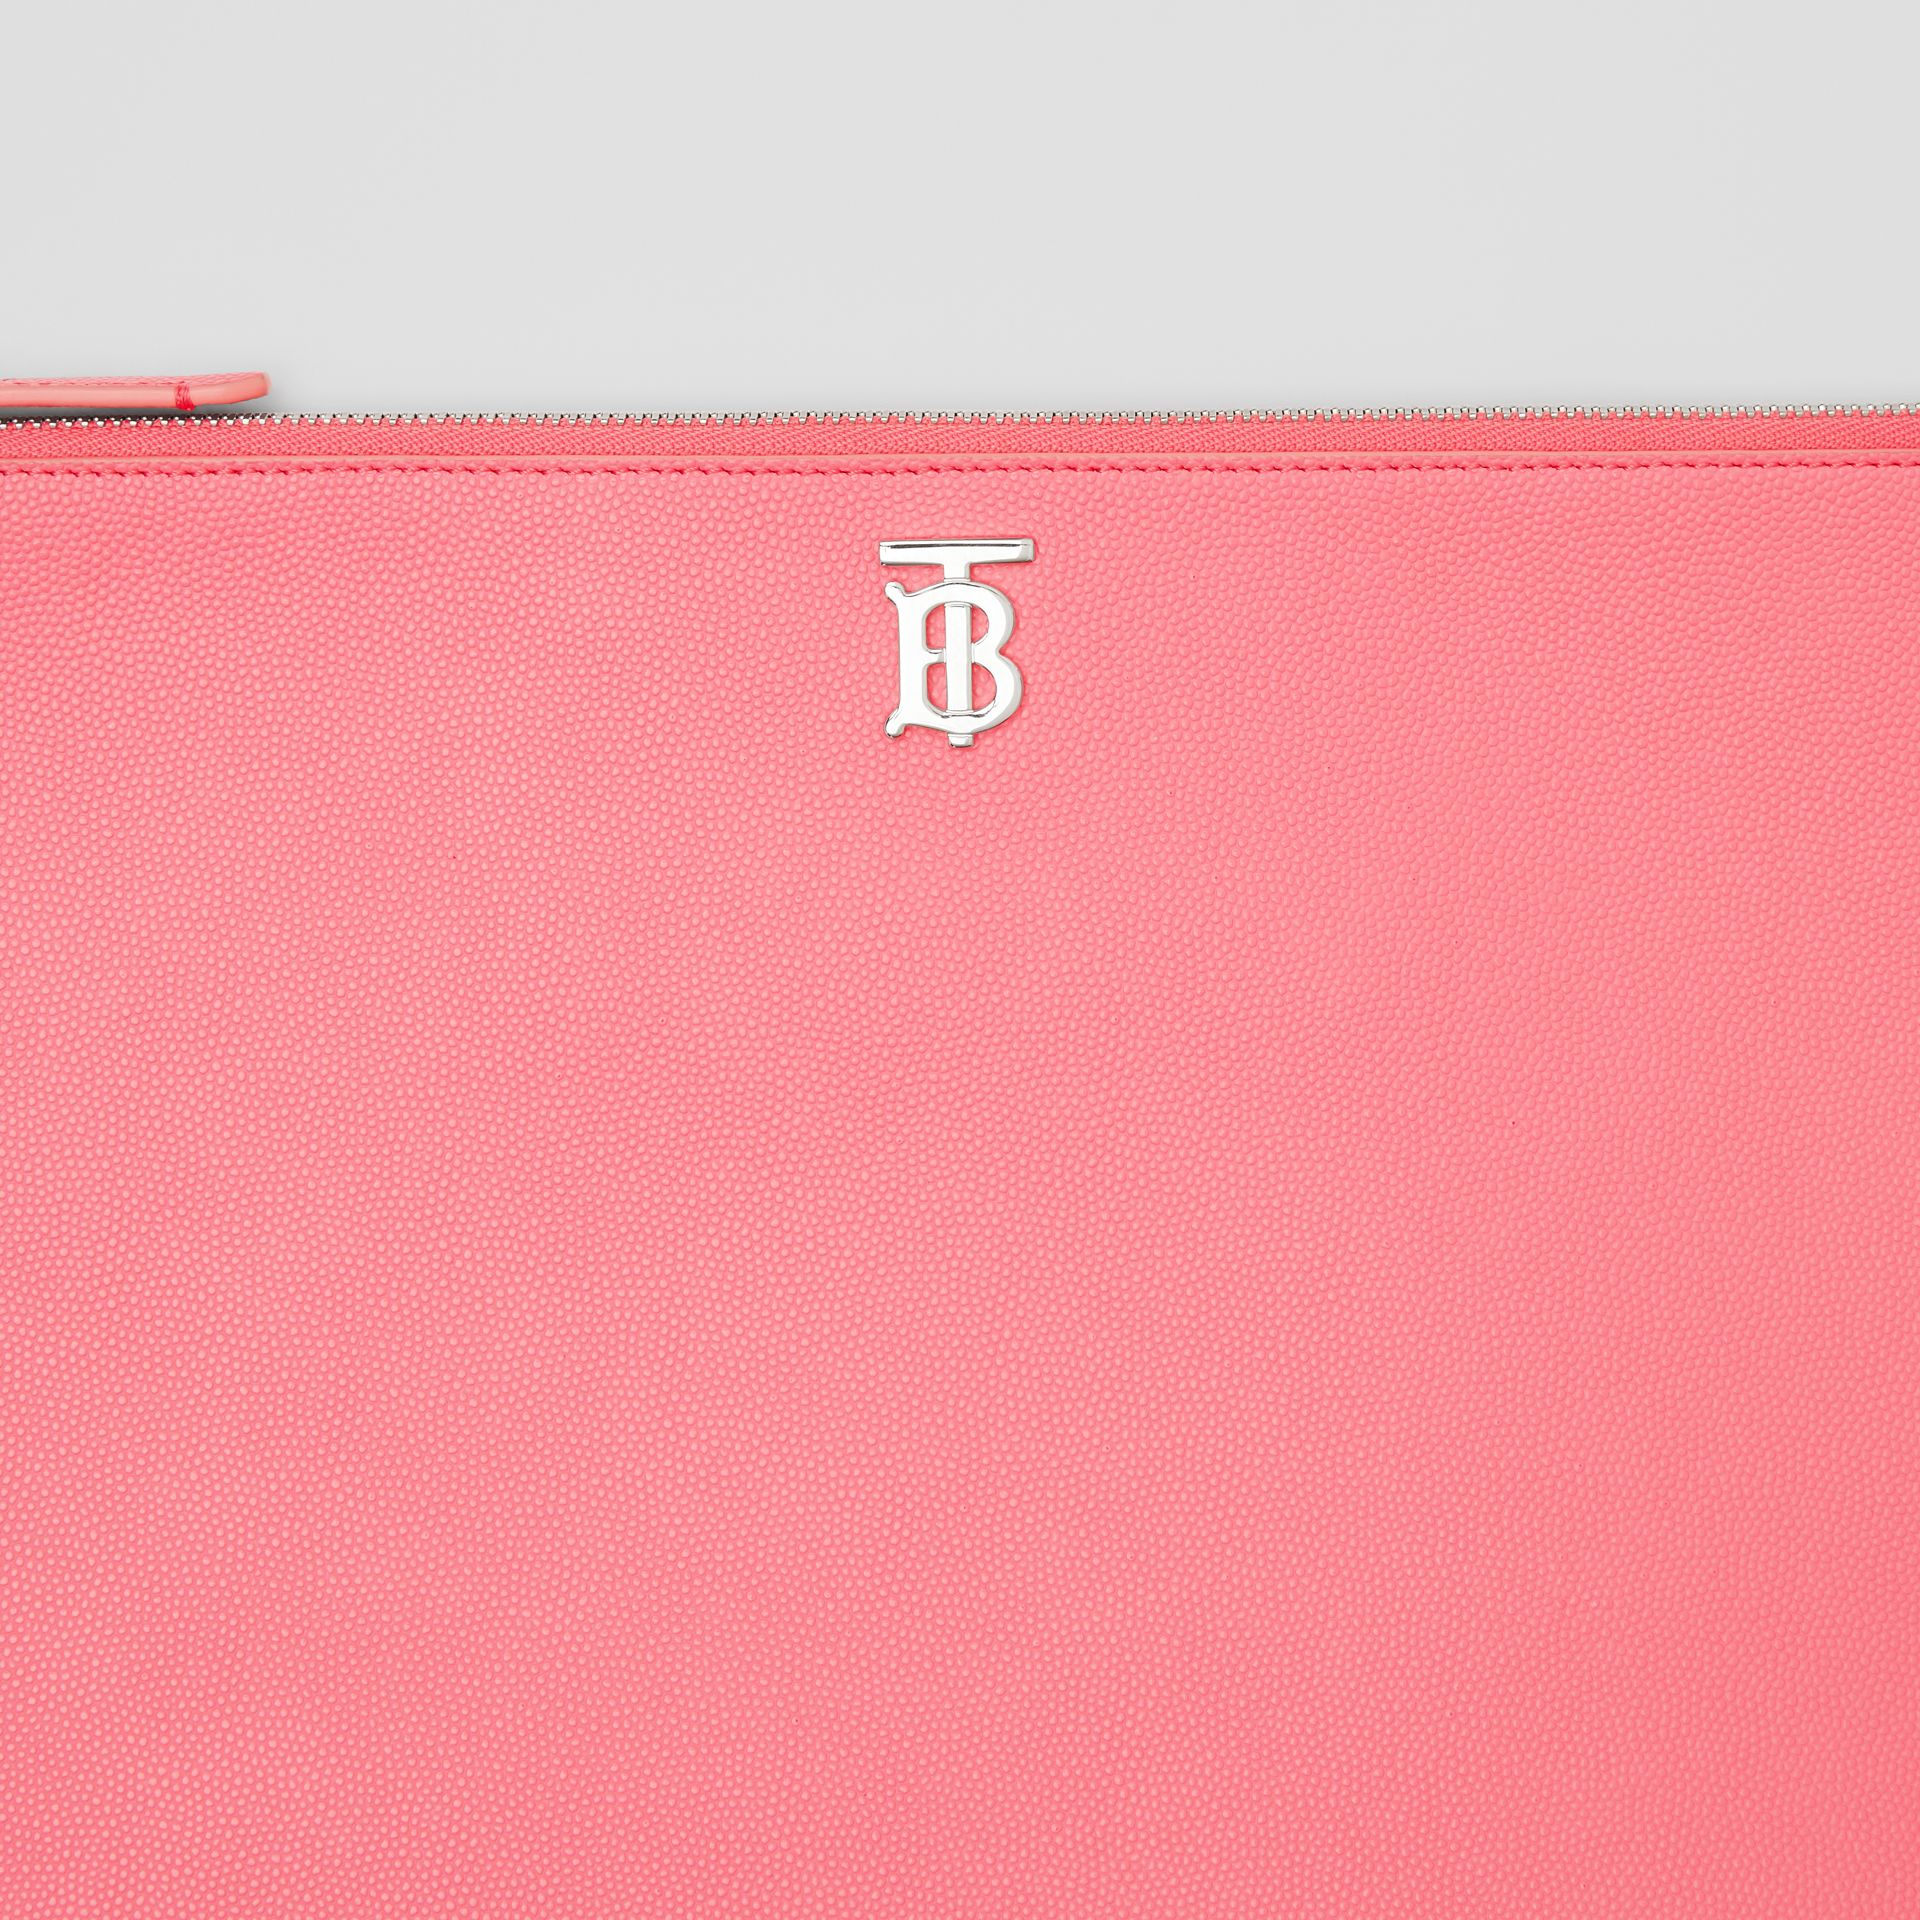 Monogram Motif Grainy Leather Pouch in Candy Floss | Burberry - gallery image 1